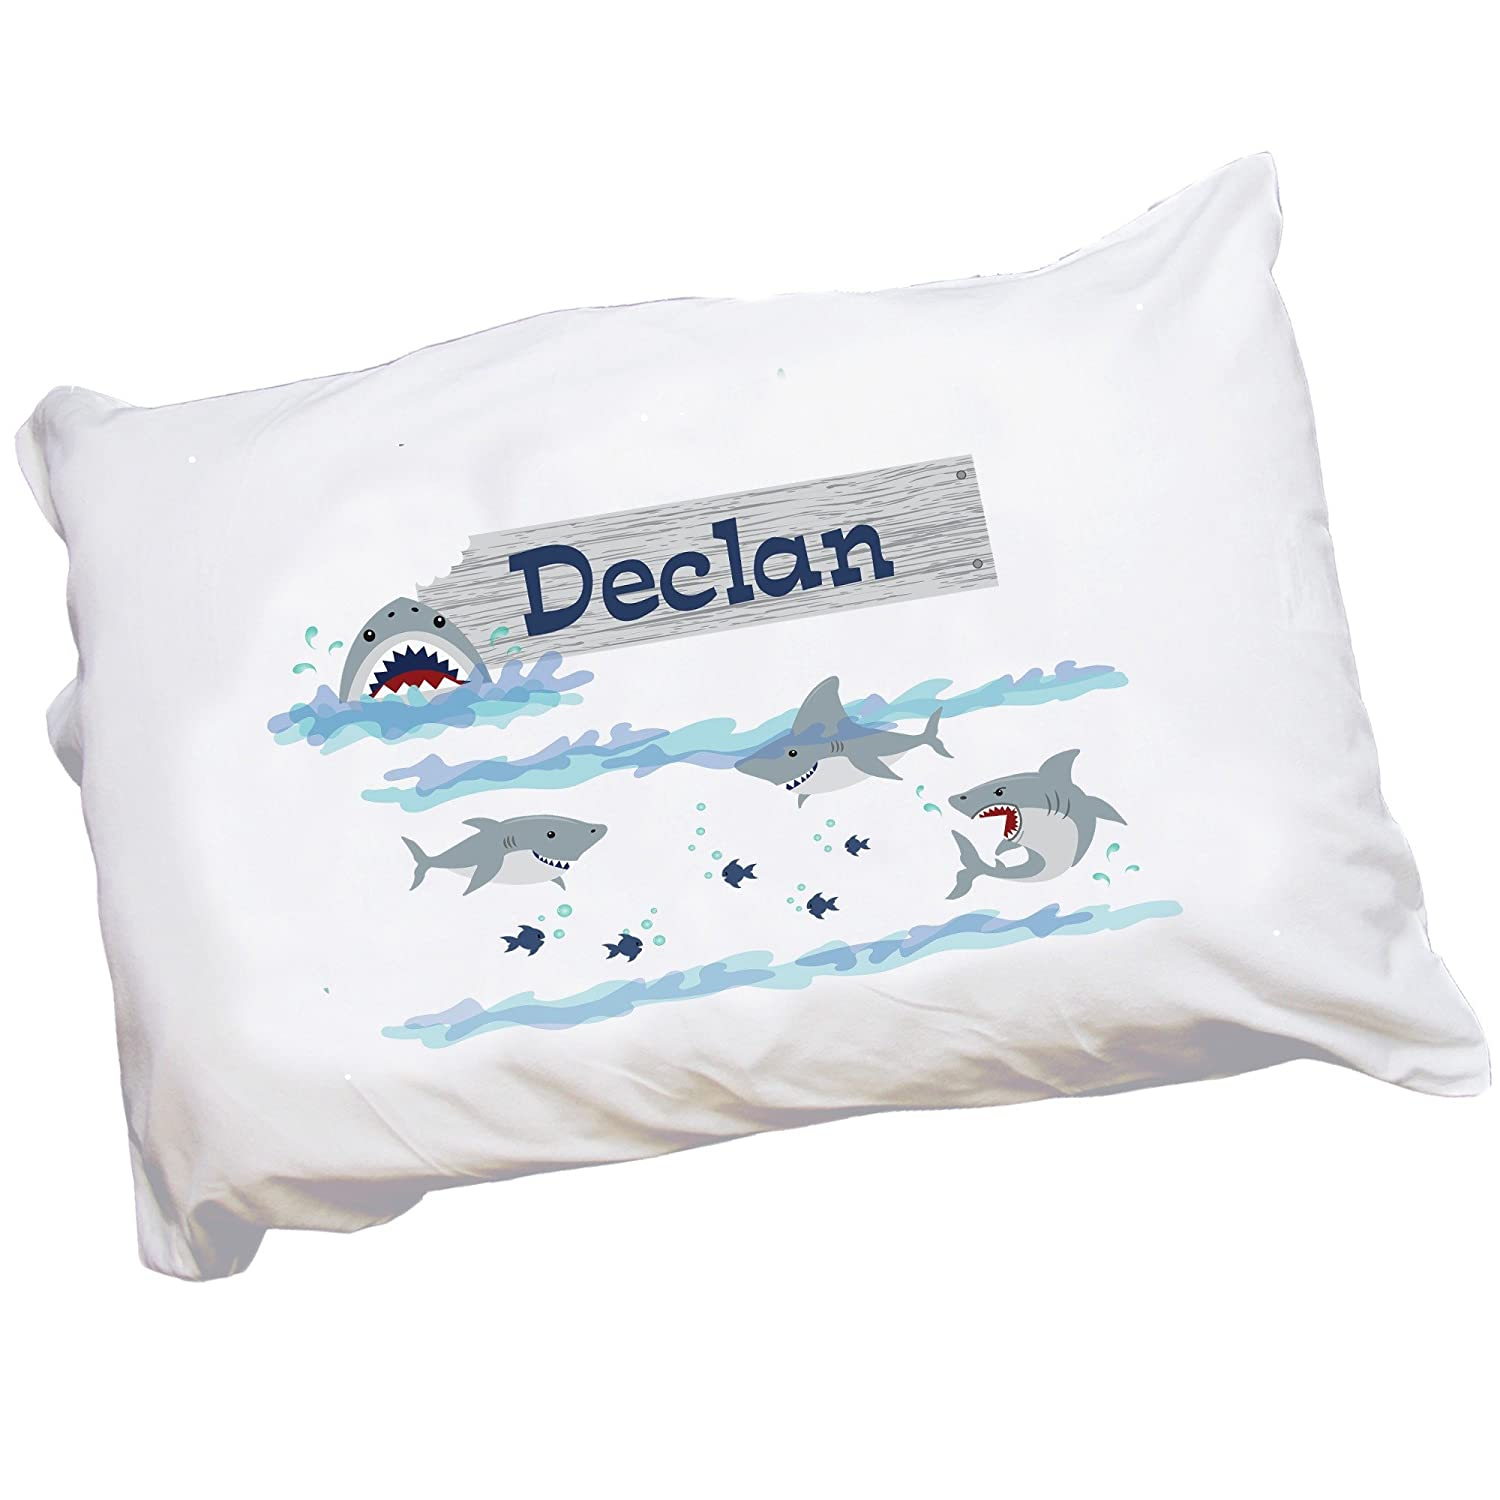 MyBambino Personalized Shark Tank Pillowcase for Toddlers